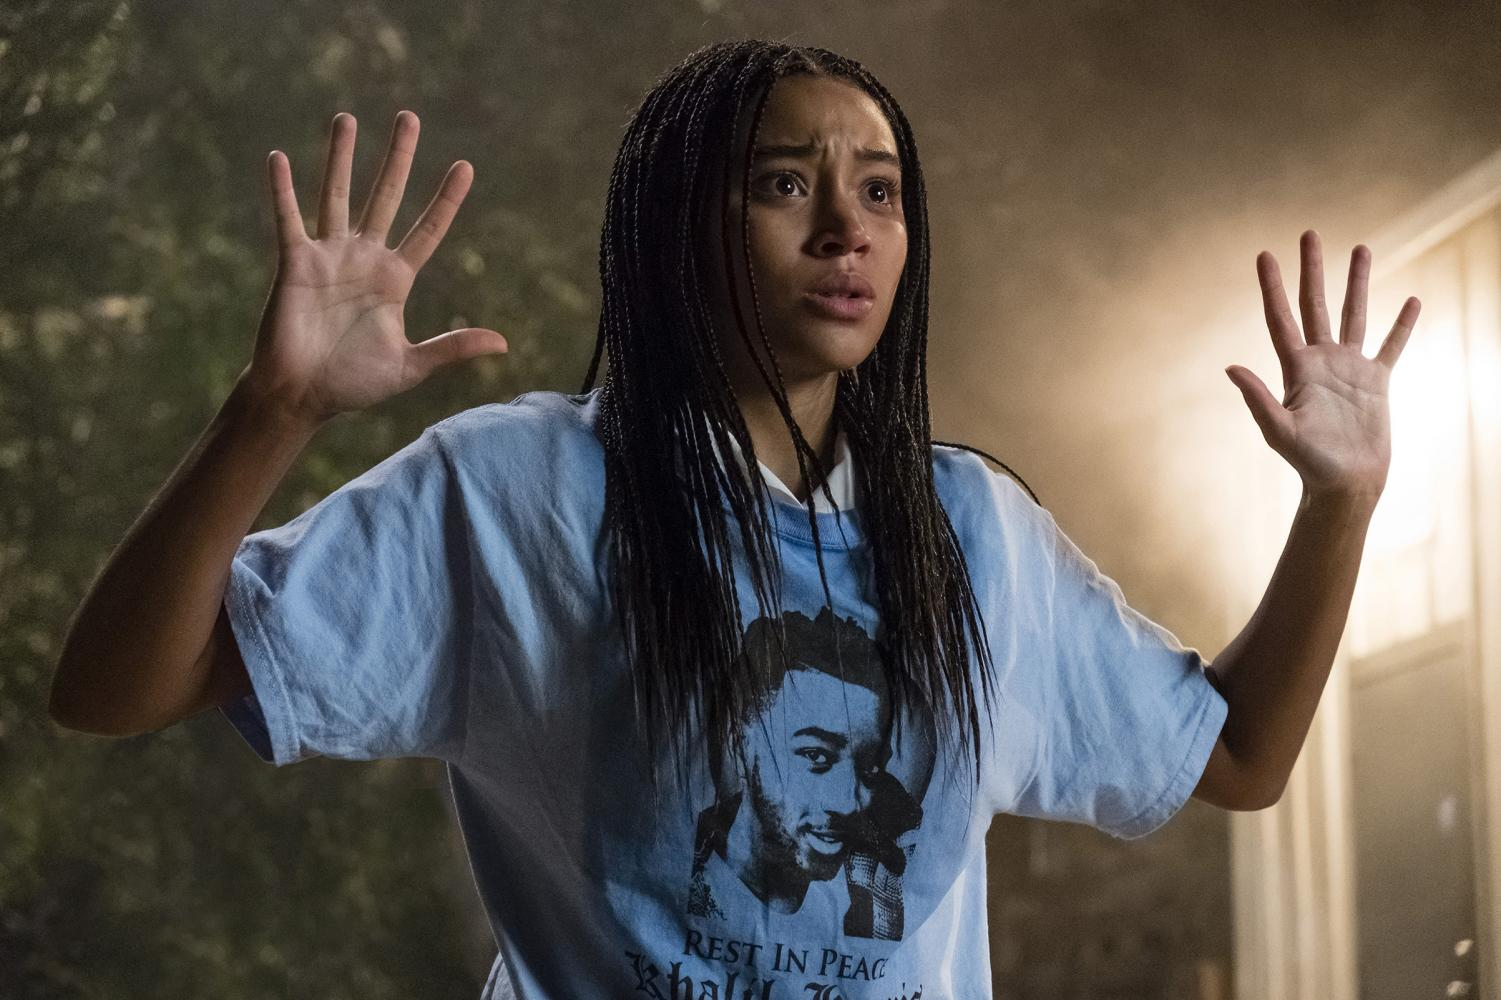 A scene from The Hate U Give, directed by Geaorge Tilman. It started as a book and gained popularity.